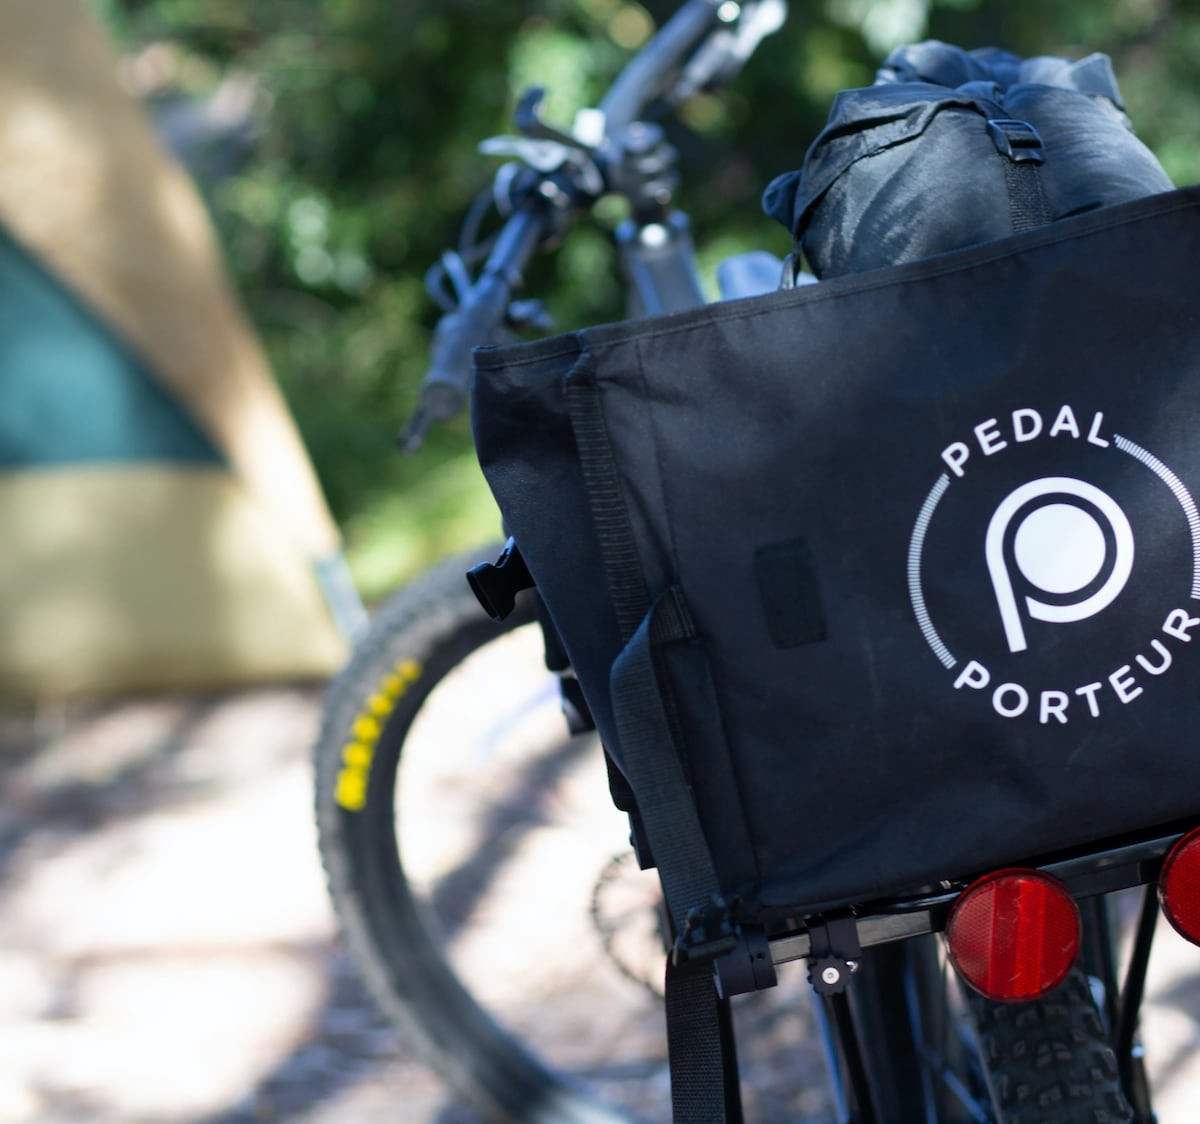 PedalPorteur bicycle cargo system fits things of all different sizes